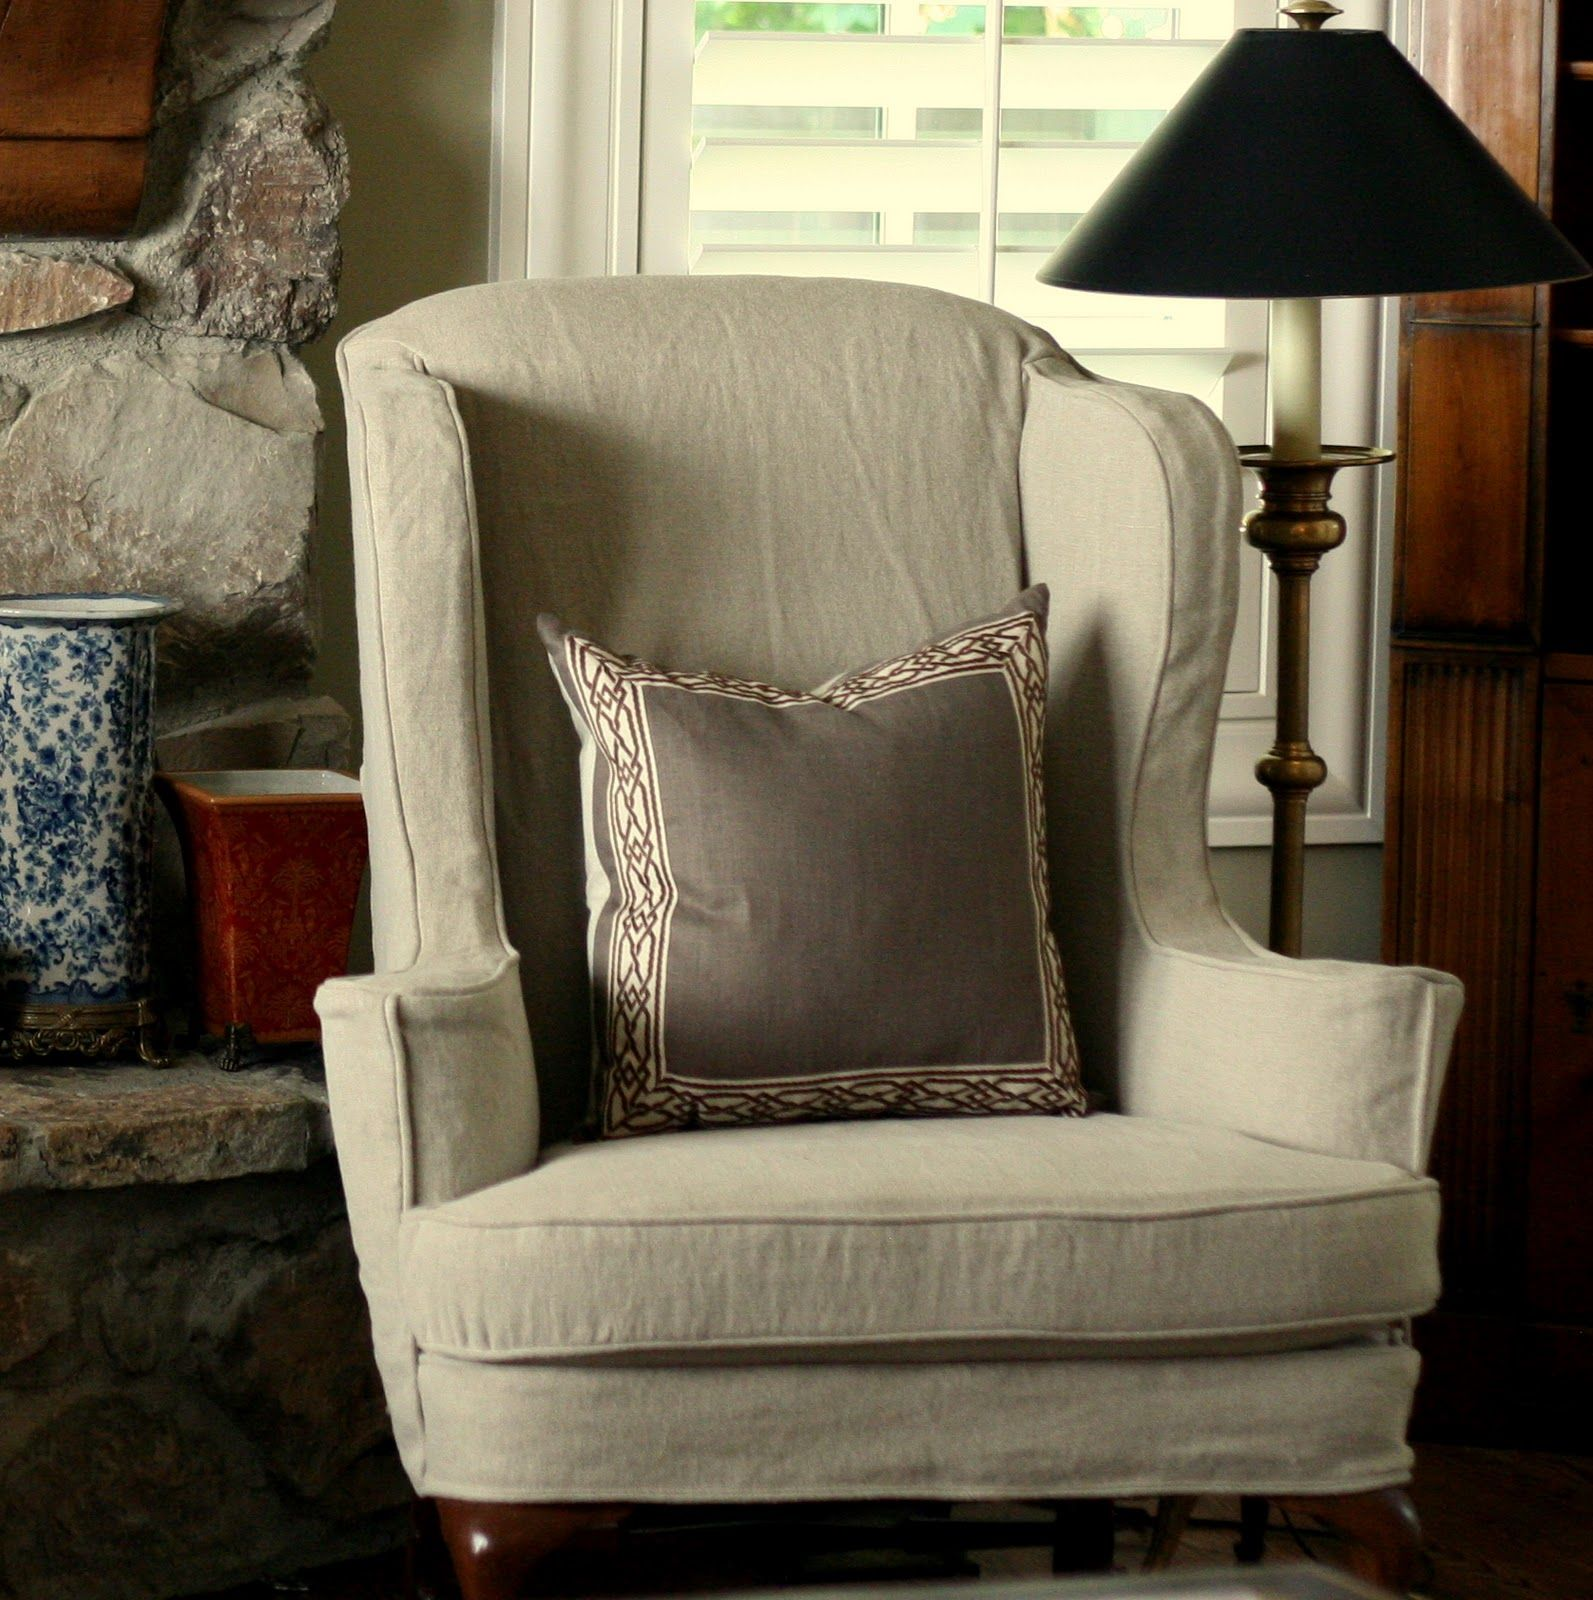 find chairs for right armless slipcovers recliner x room club ottoman of best dinning furniture and the t cushion slipcover ottomans with full chair regarding size sofas